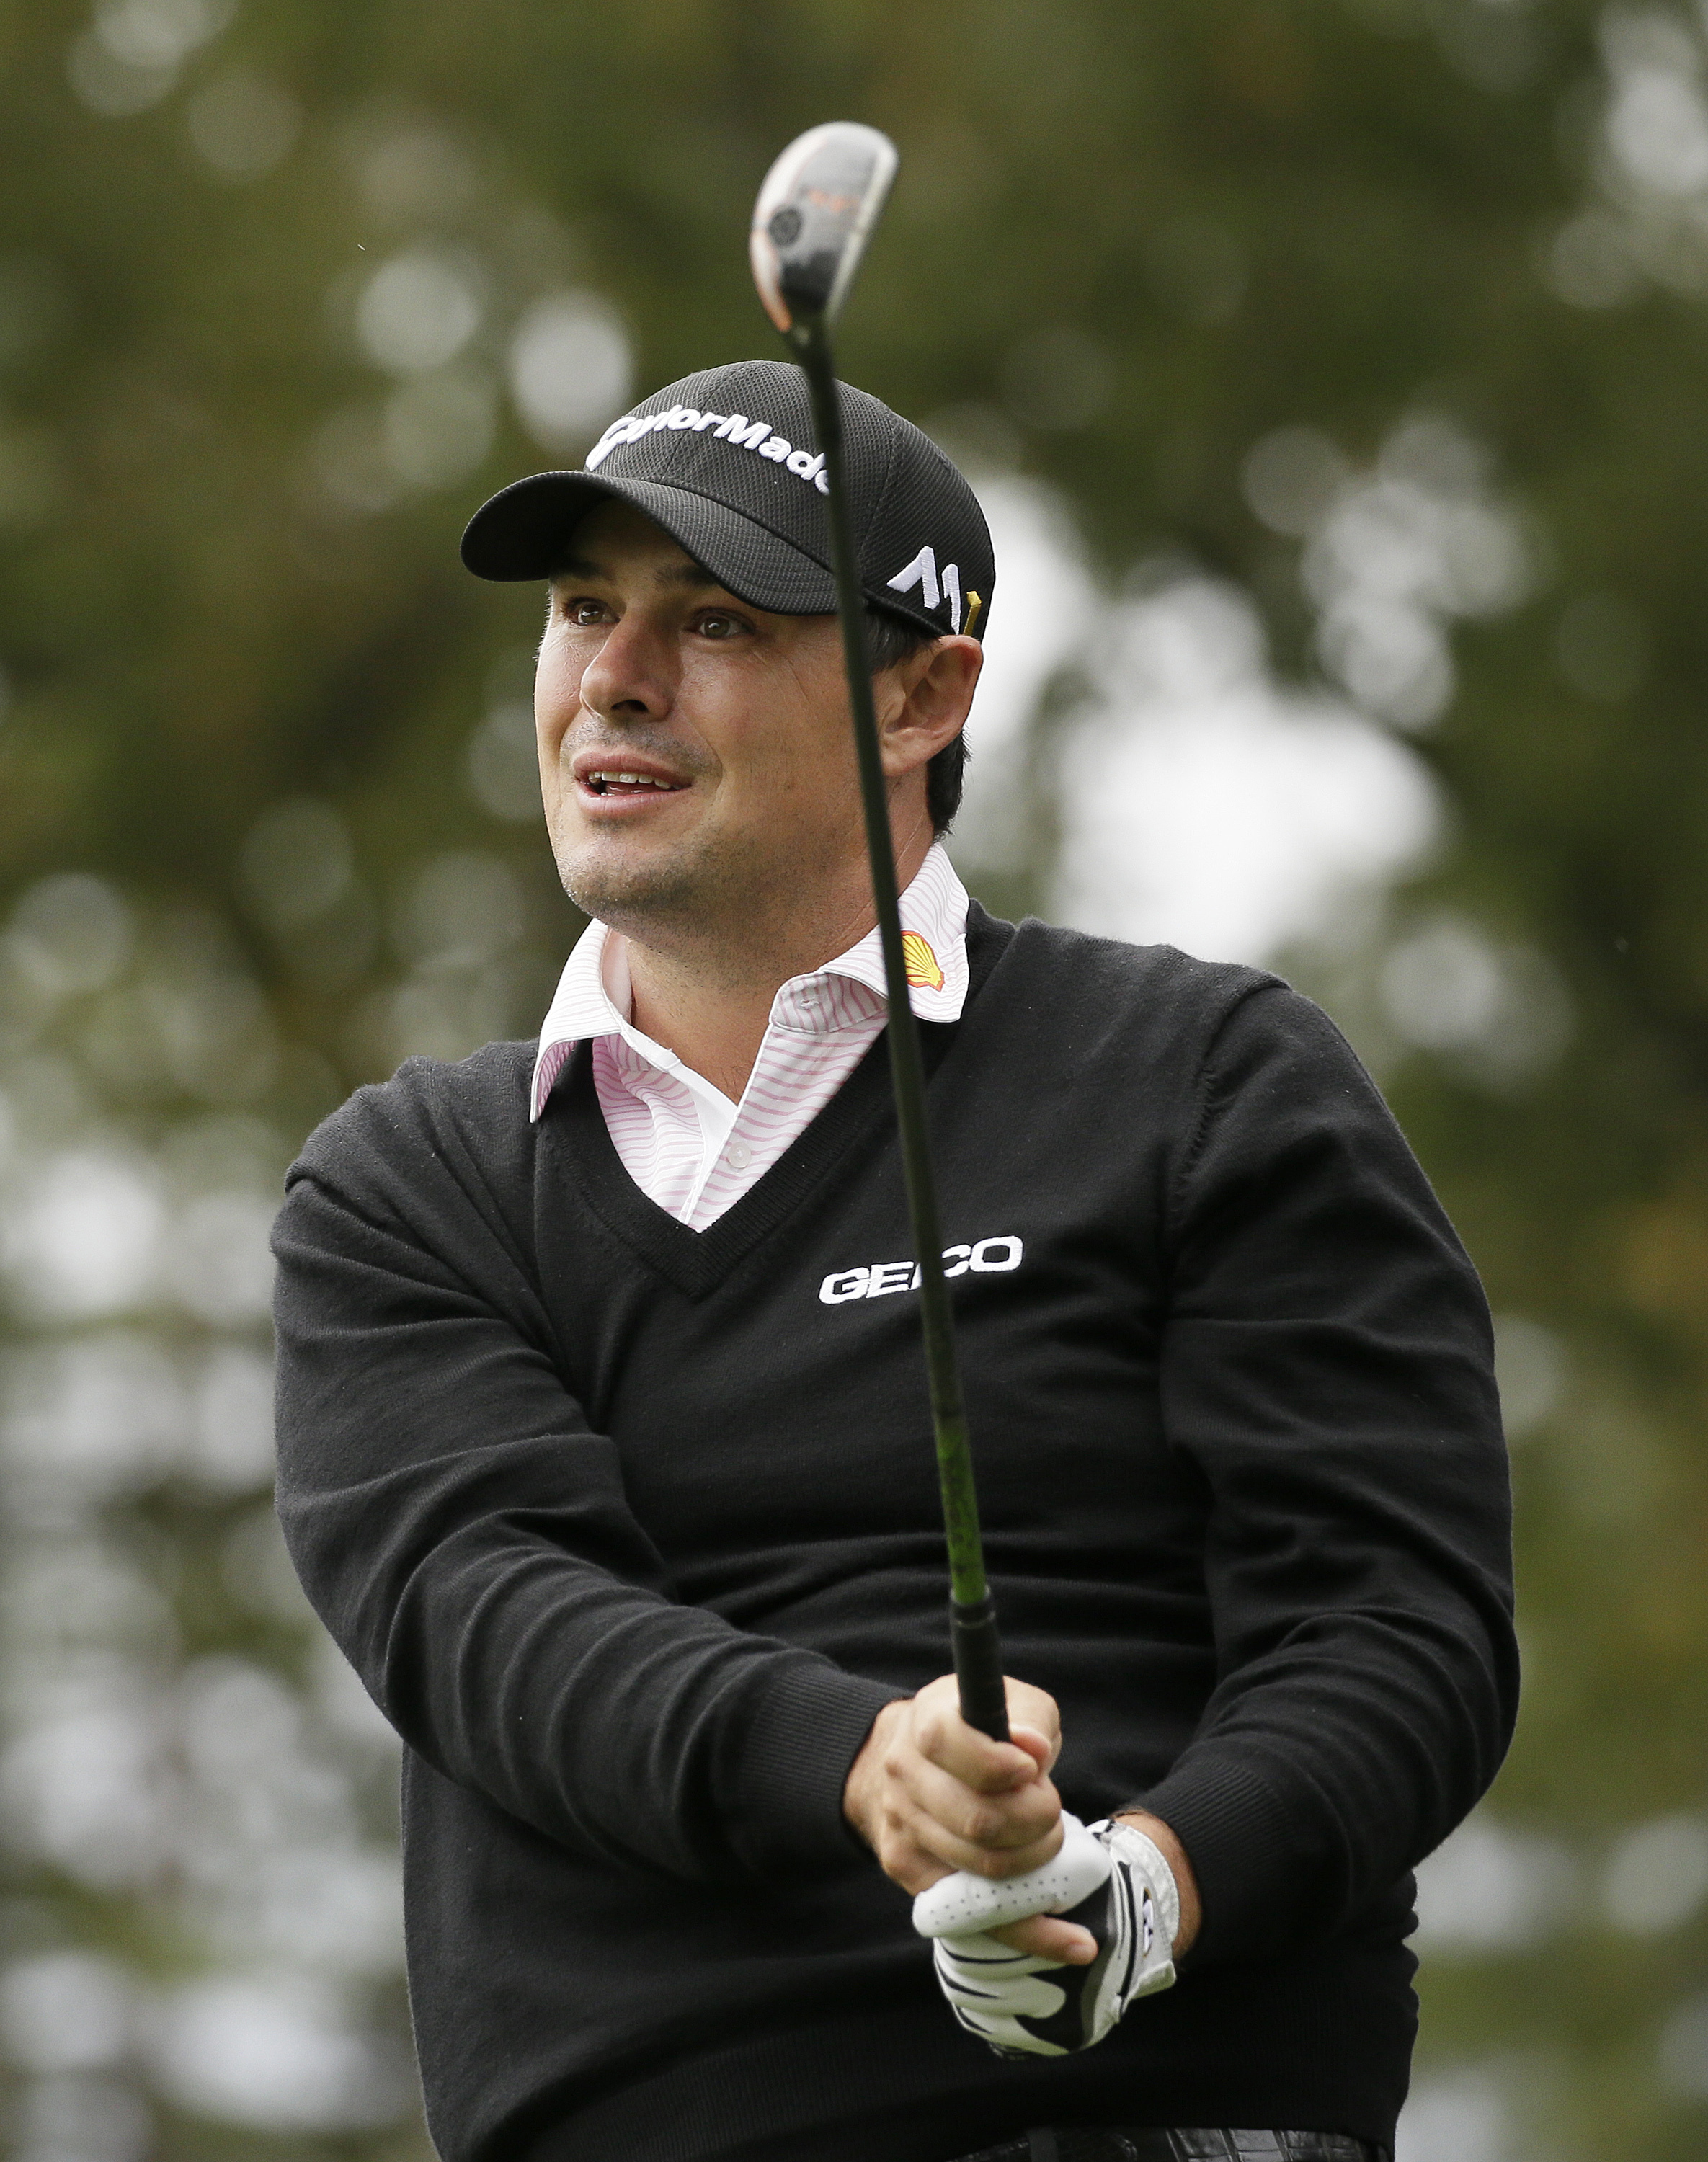 Johnson Wagner follows his shot from the seventh tee of the Silverado Resort North Course during the third round of the Safeway Open PGA golf tournament Saturday, Oct. 15, 2016, in Napa, Calif. (AP Photo/Eric